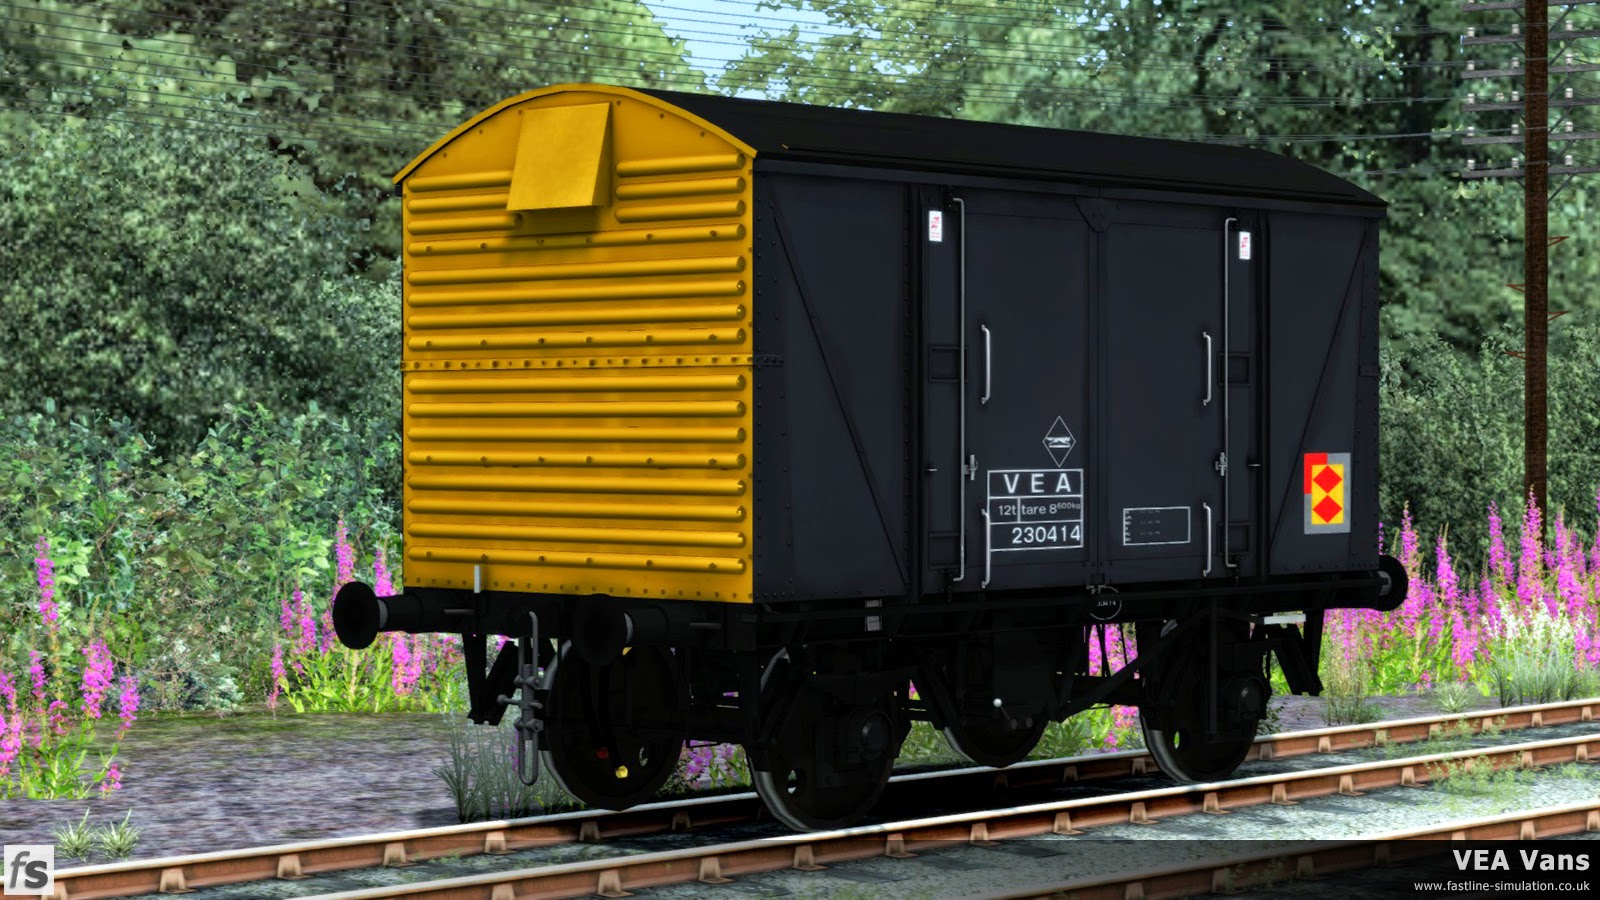 Fastline Simulation - VEA Vans: At least six VEA conversions were treated to Railfreight sector livery complete with Railfreight Distribution decals as British Rail was broken up into individual businesses.